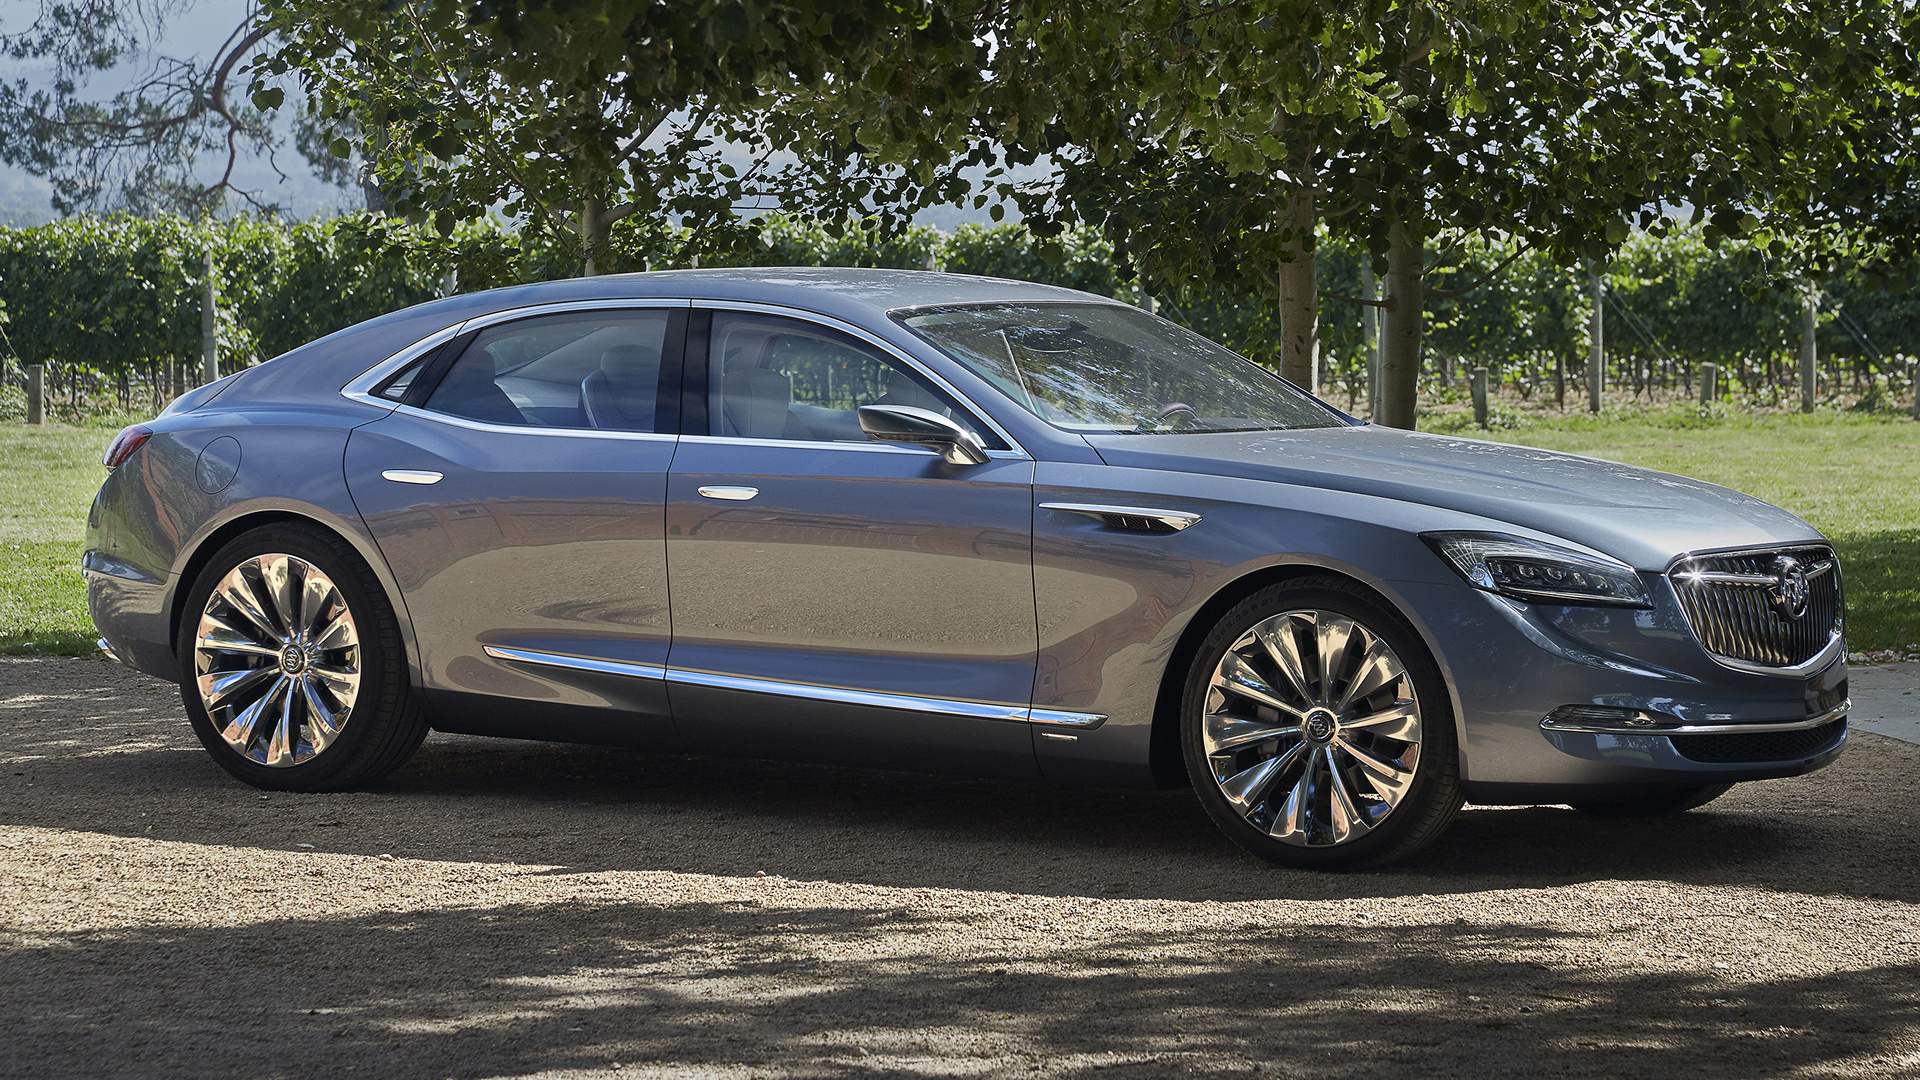 Buick Avenir Concept (2015) Wallpapers and HD Images - Car Pixel